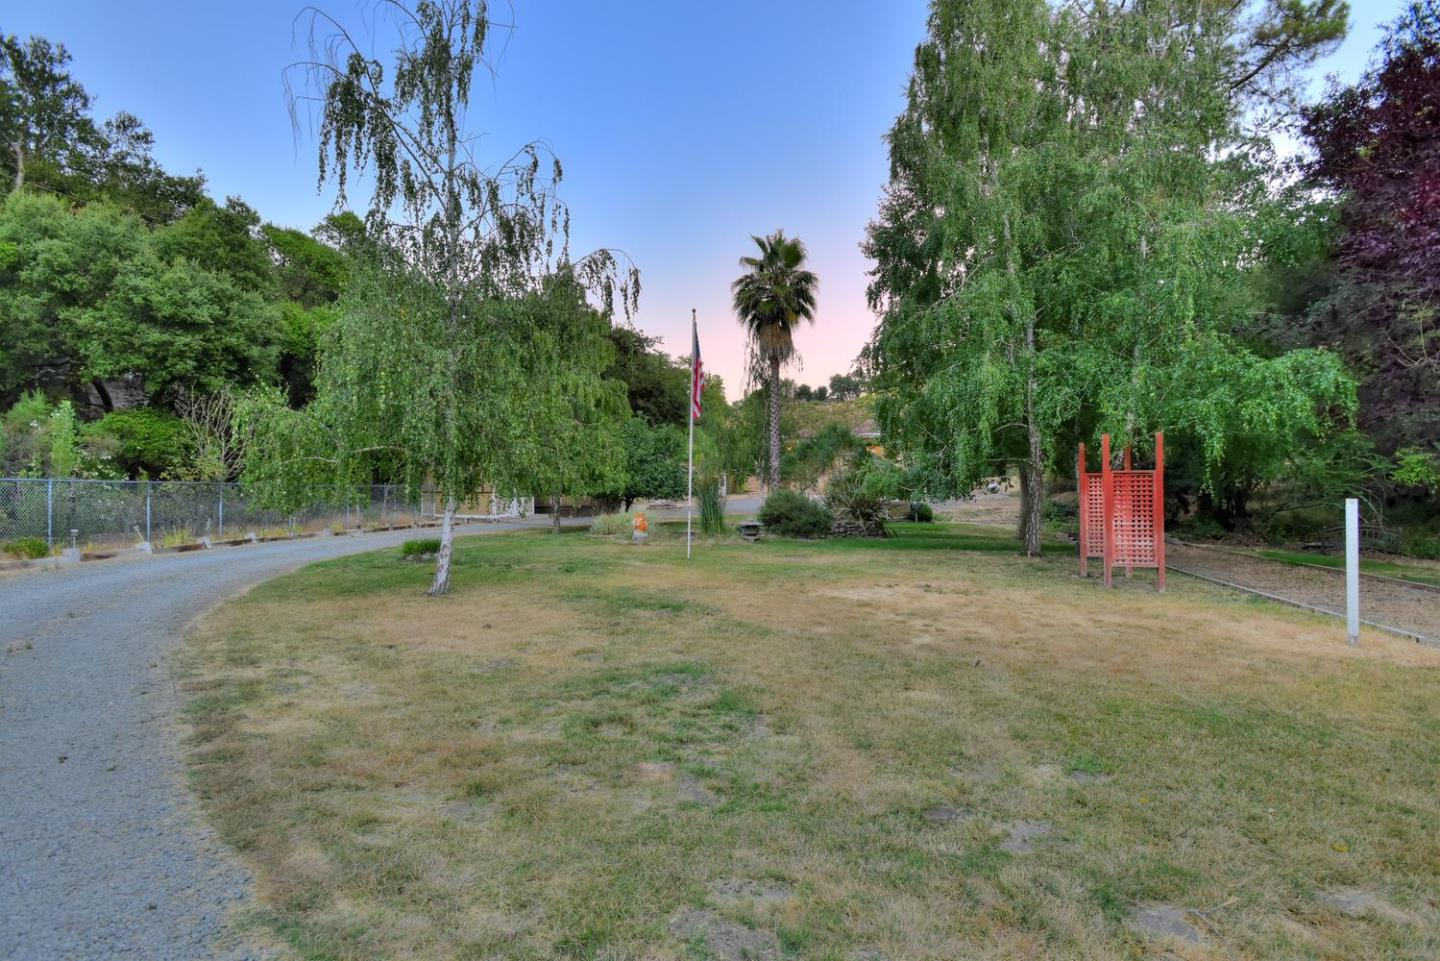 15110 Shannon Road Los Gatos, CA 95032 - MLS #: ML81715724